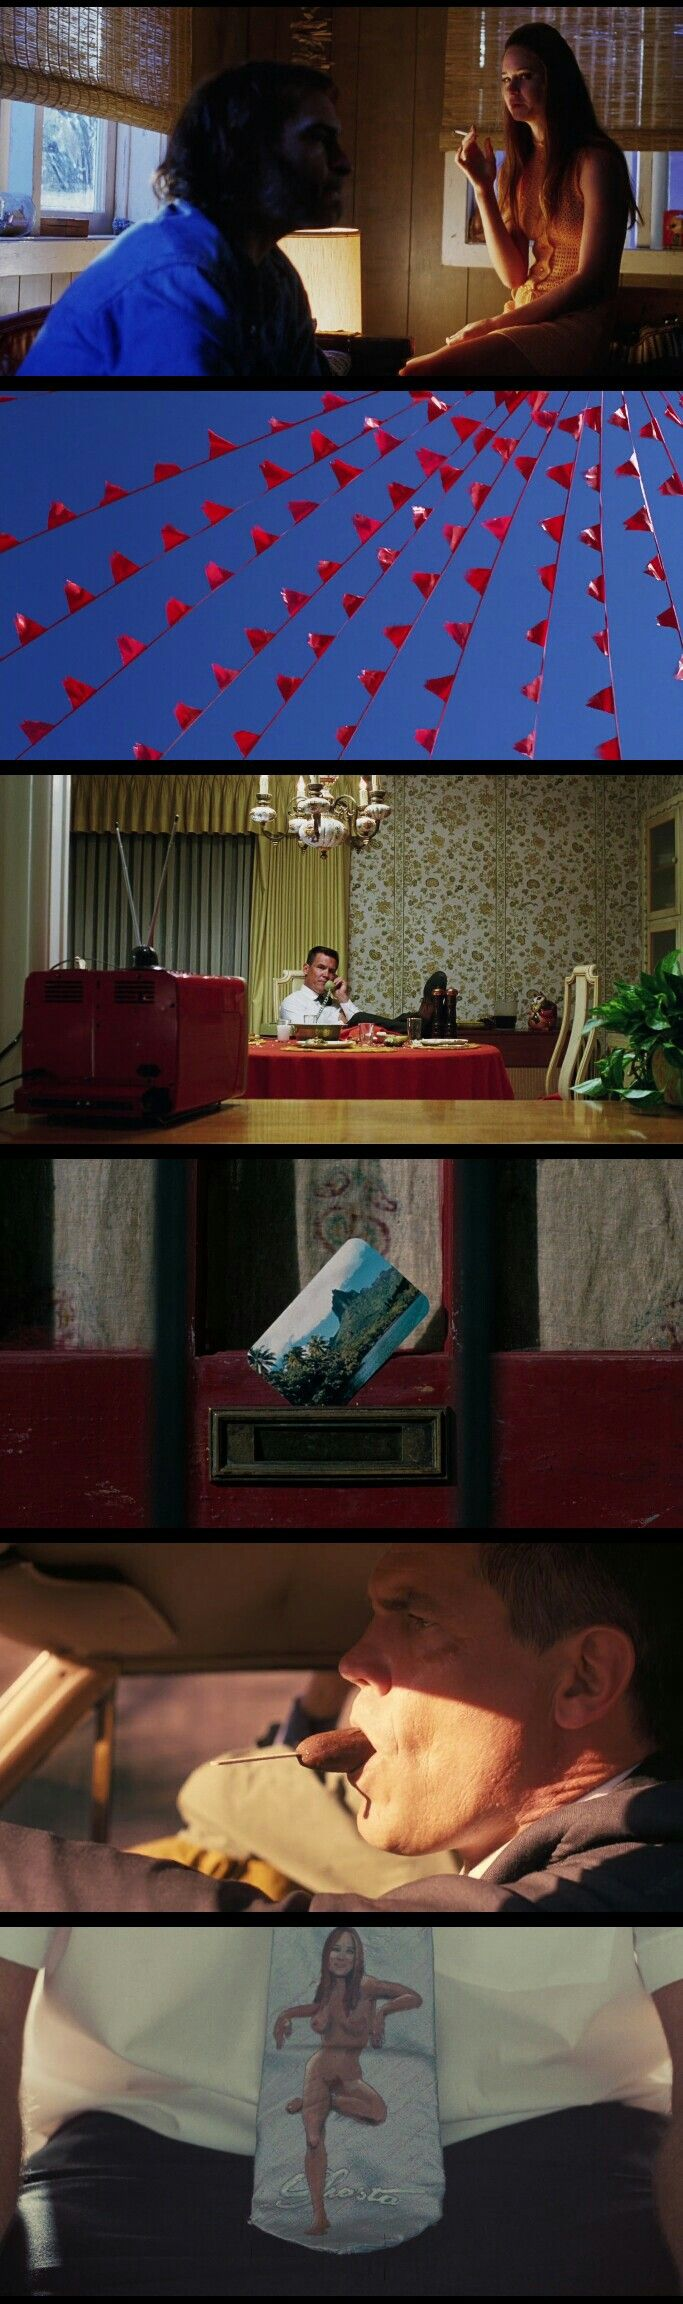 Lighting and Cinematography. Inherent Vice(2014) Director: Paul Thomas Anderson. Cinematography : Robert Elswit.